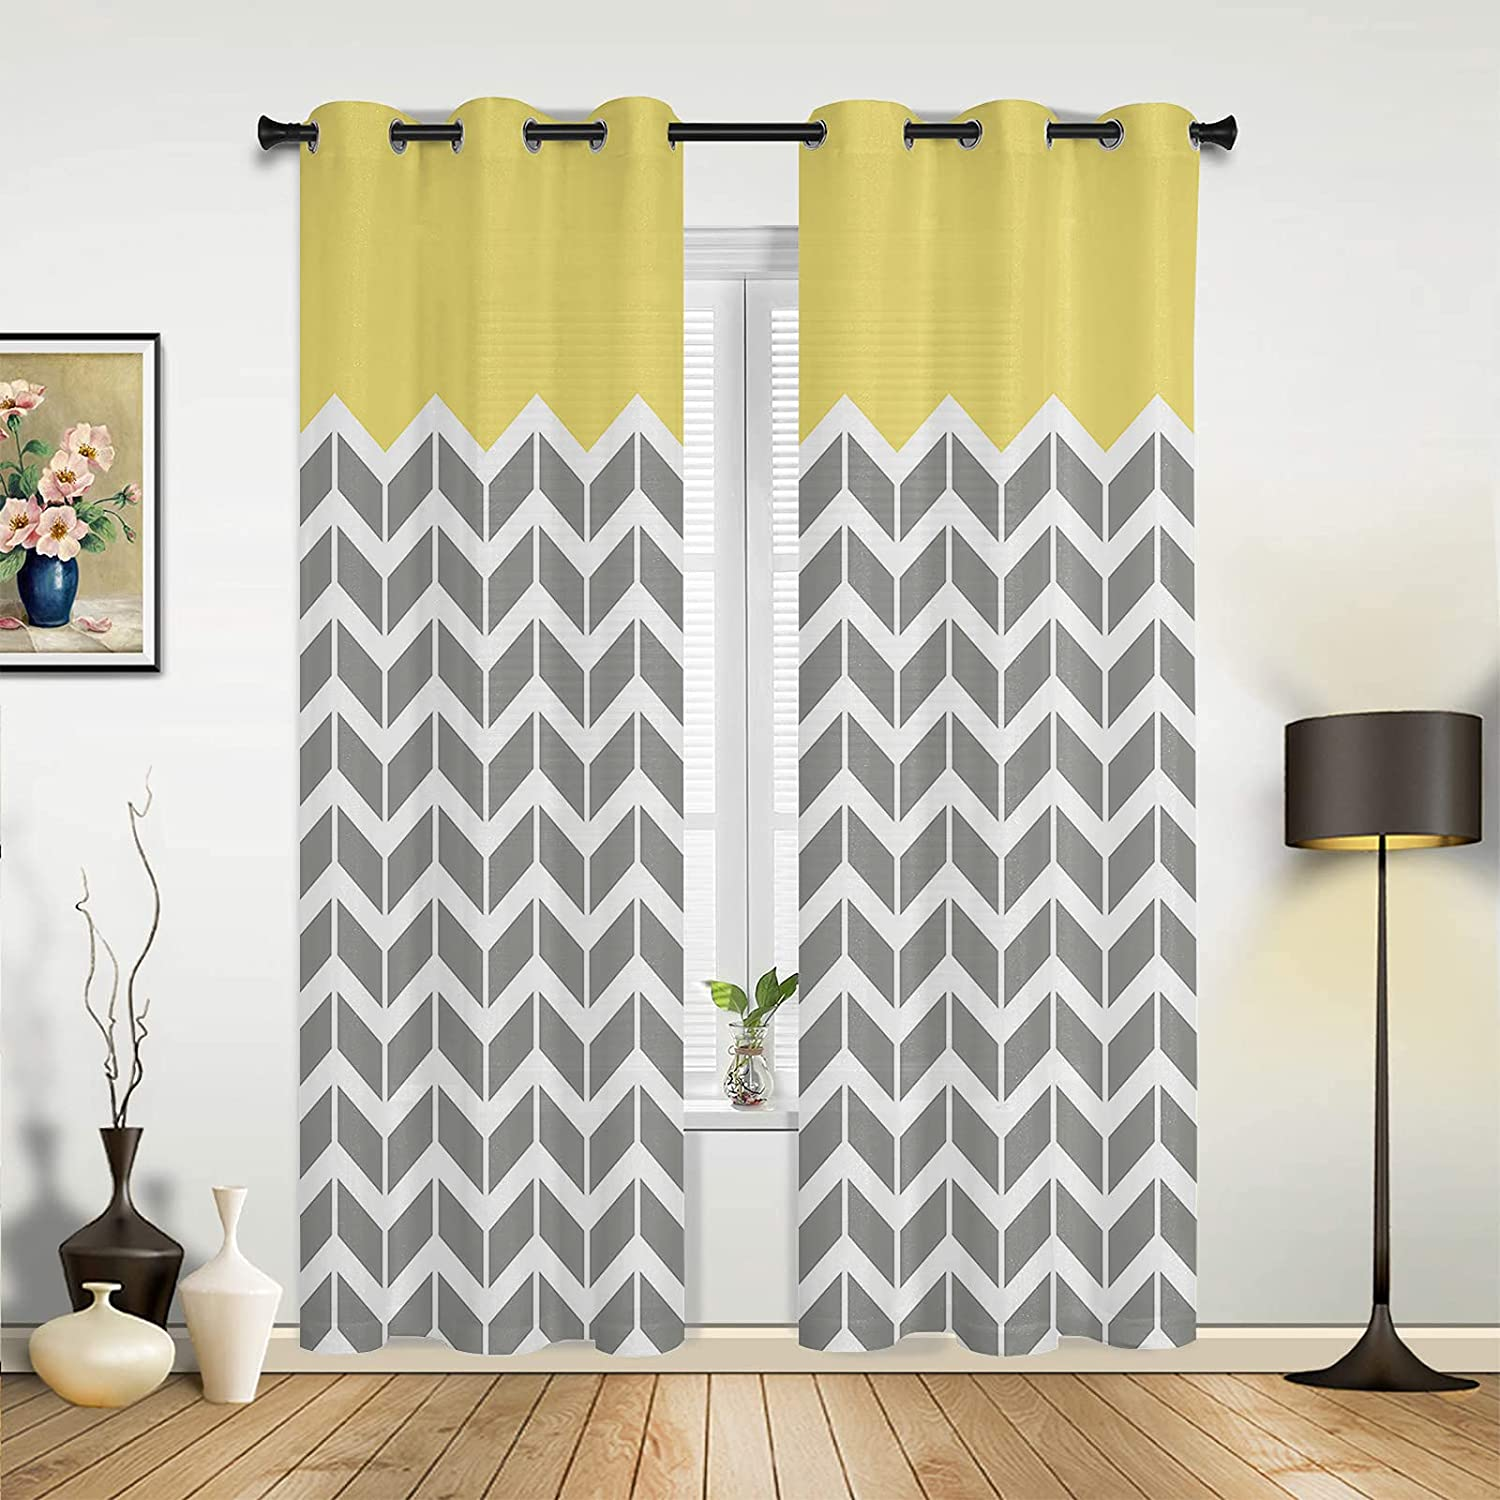 Window Sheer Curtains Super sale period limited for Bedroom Yellow Bombing new work Room Herringbone Living